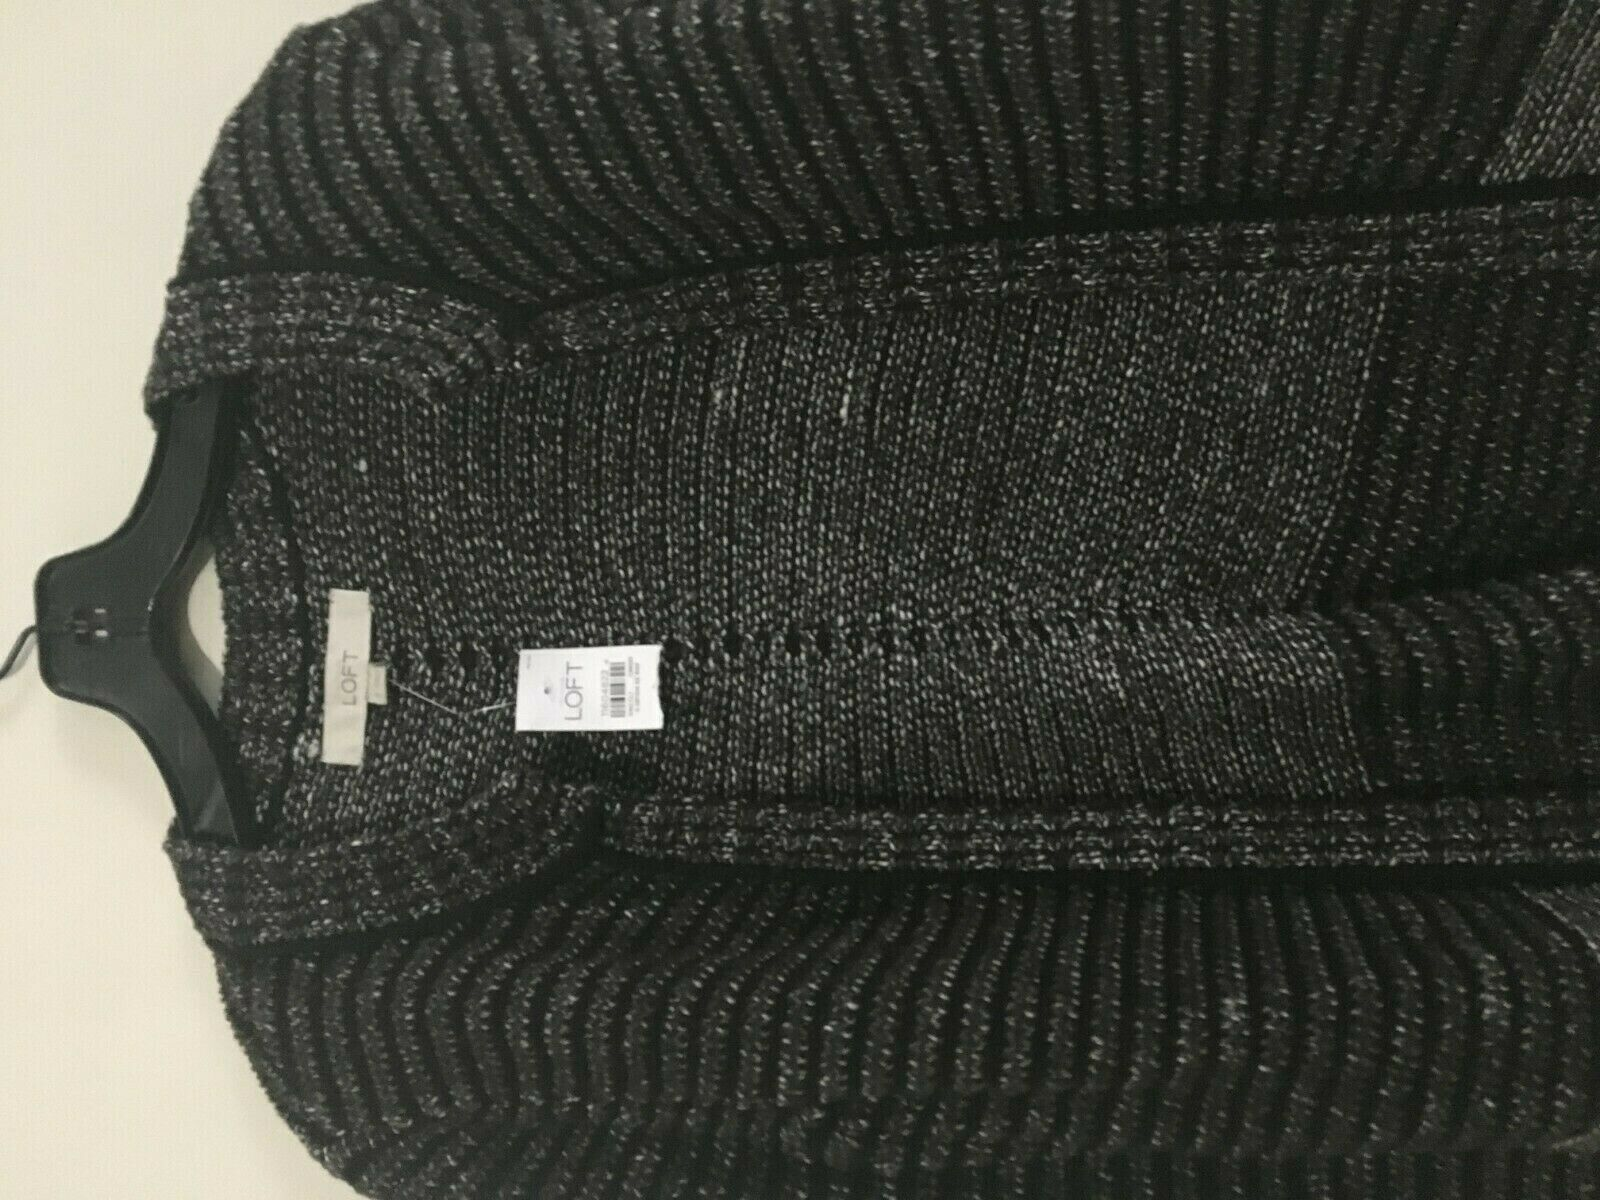 NWT Ann Taylor Loft Tweed Brown Cardigan Size S S S Sweater Top Women 100% Cotton 095171